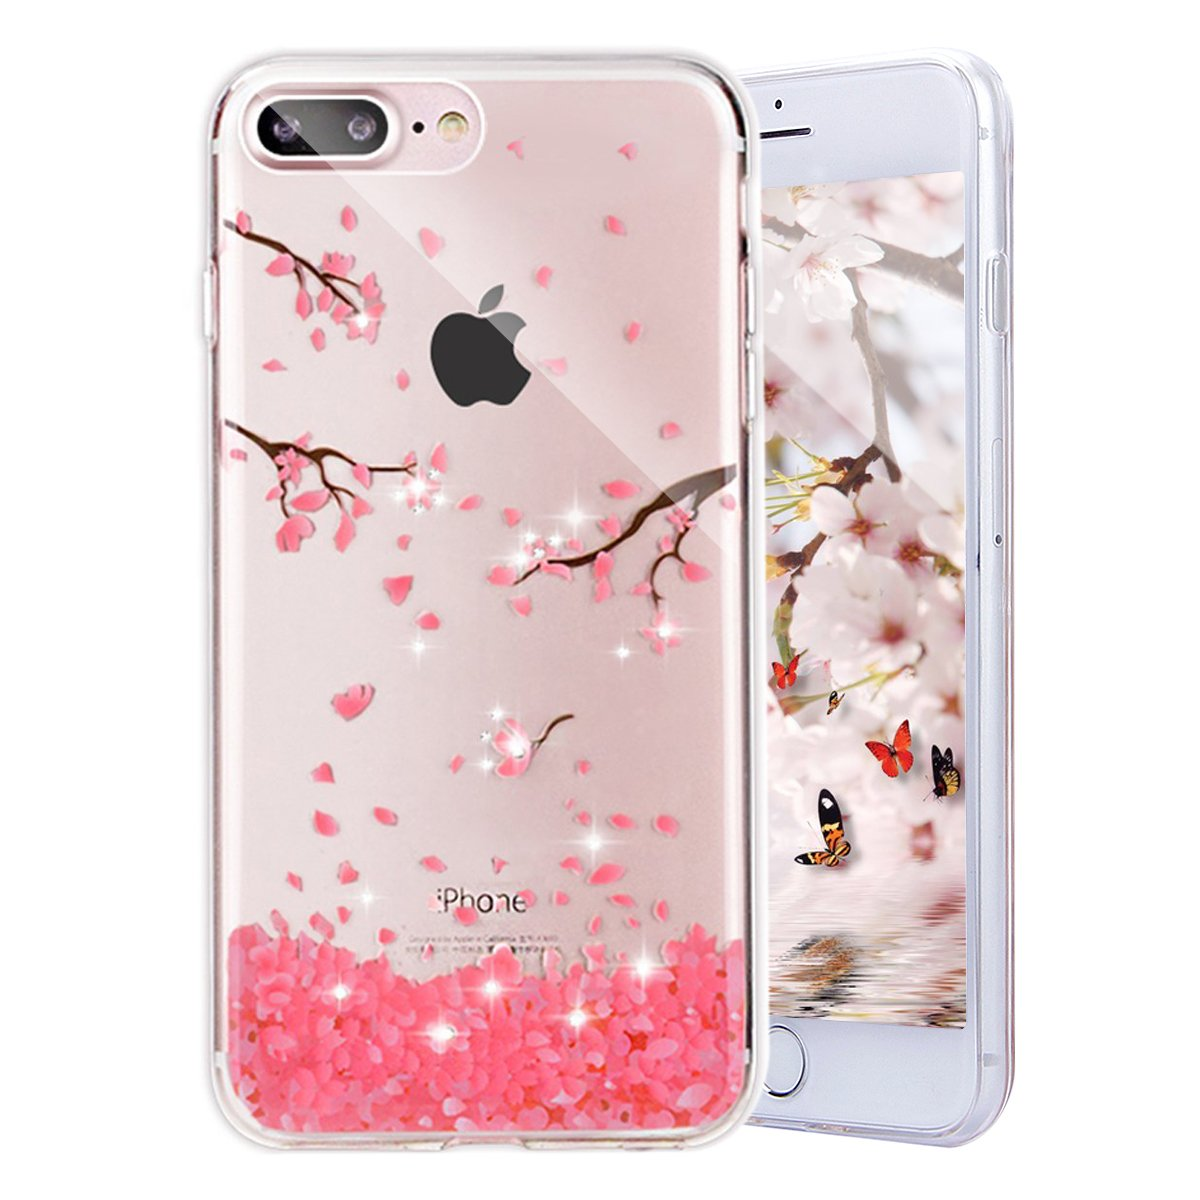 PHEZEN iPhone 8 Plus Case,iPhone 7 Plus Case, iPhone 7 Plus TPU Case Luxury Bling Diamond Crystal Clear Soft TPU Silicone Back Cover with Cute Pattern for 5.5 inch iPhone 7 Plus, Cherry Blossoms